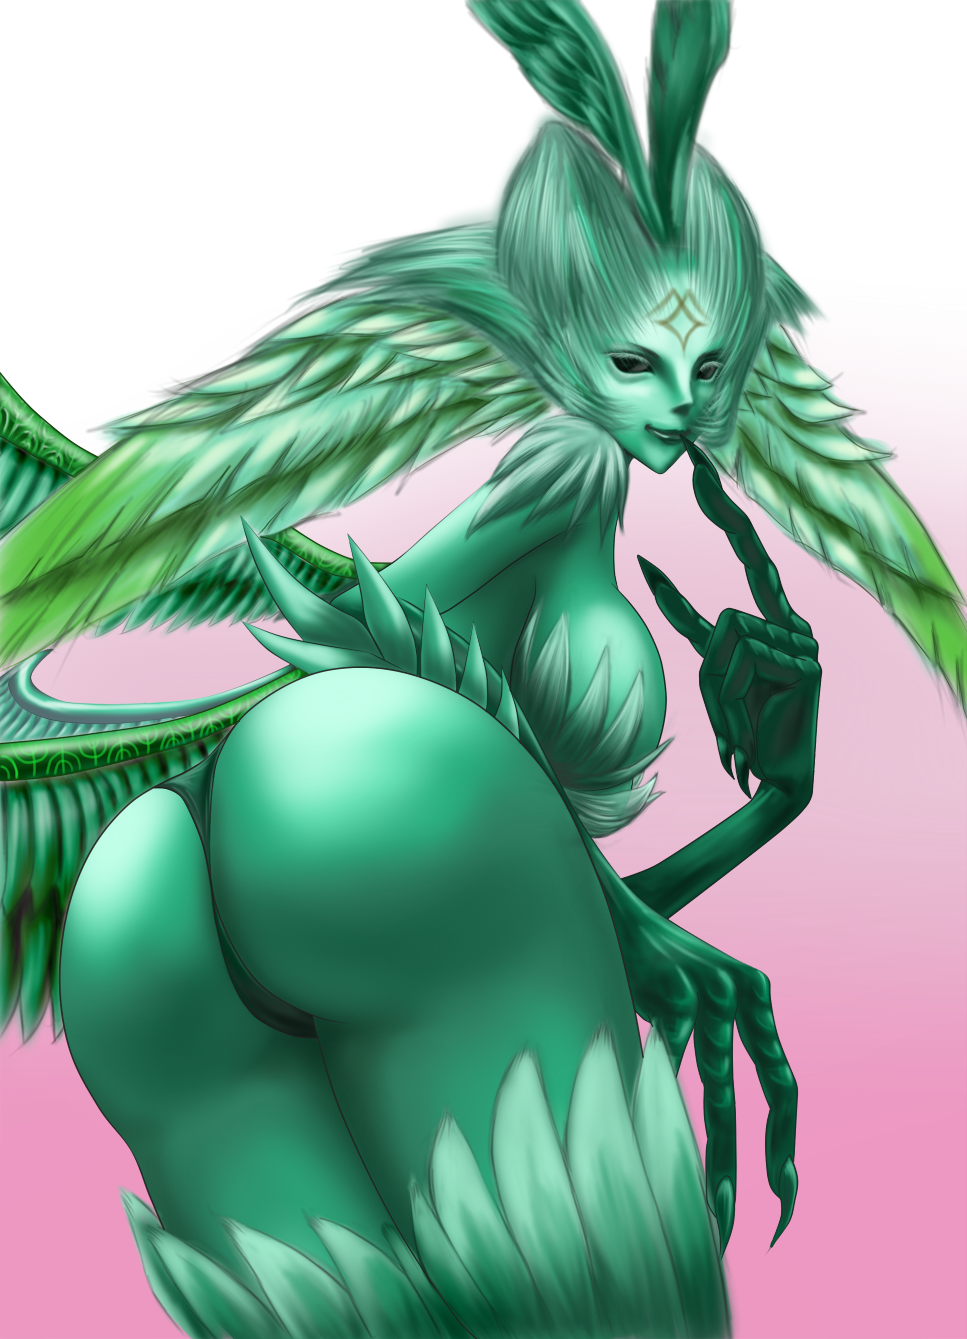 xiv patch nude fantasy final 2 guys 1 girl anal